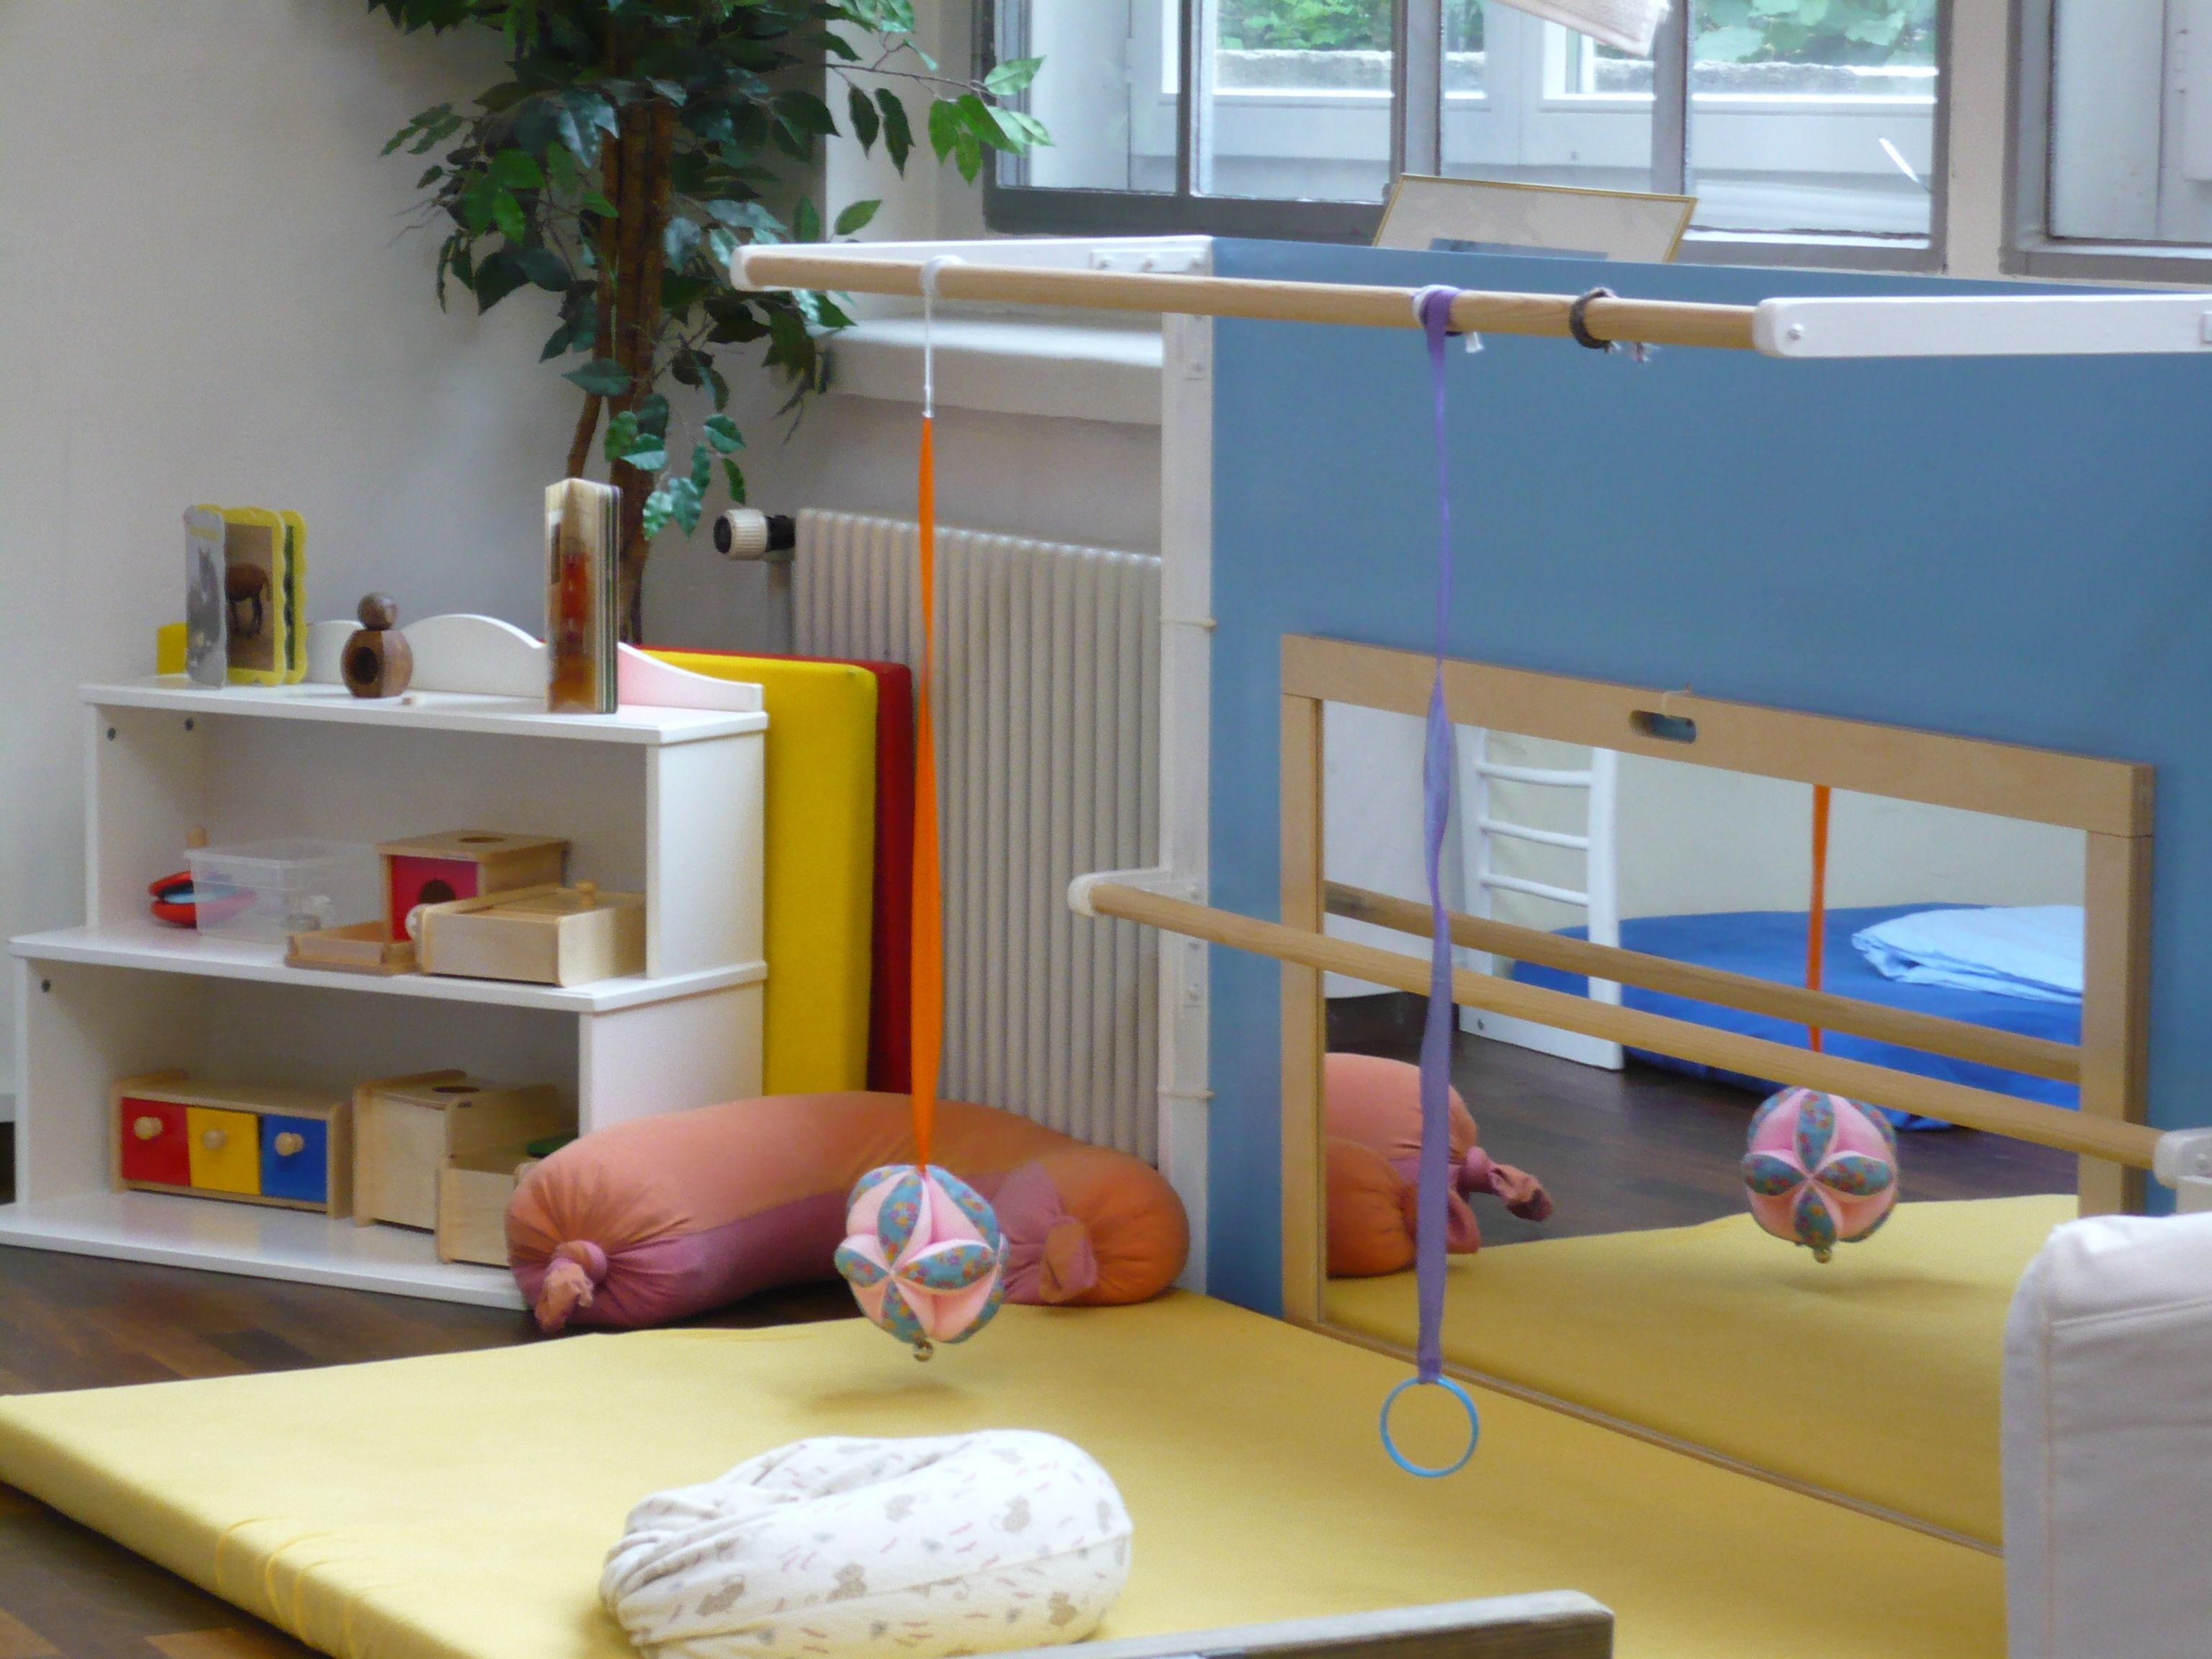 Baby play areas on pinterest playpen ideas baby playpen and baby playroom - Room e ...